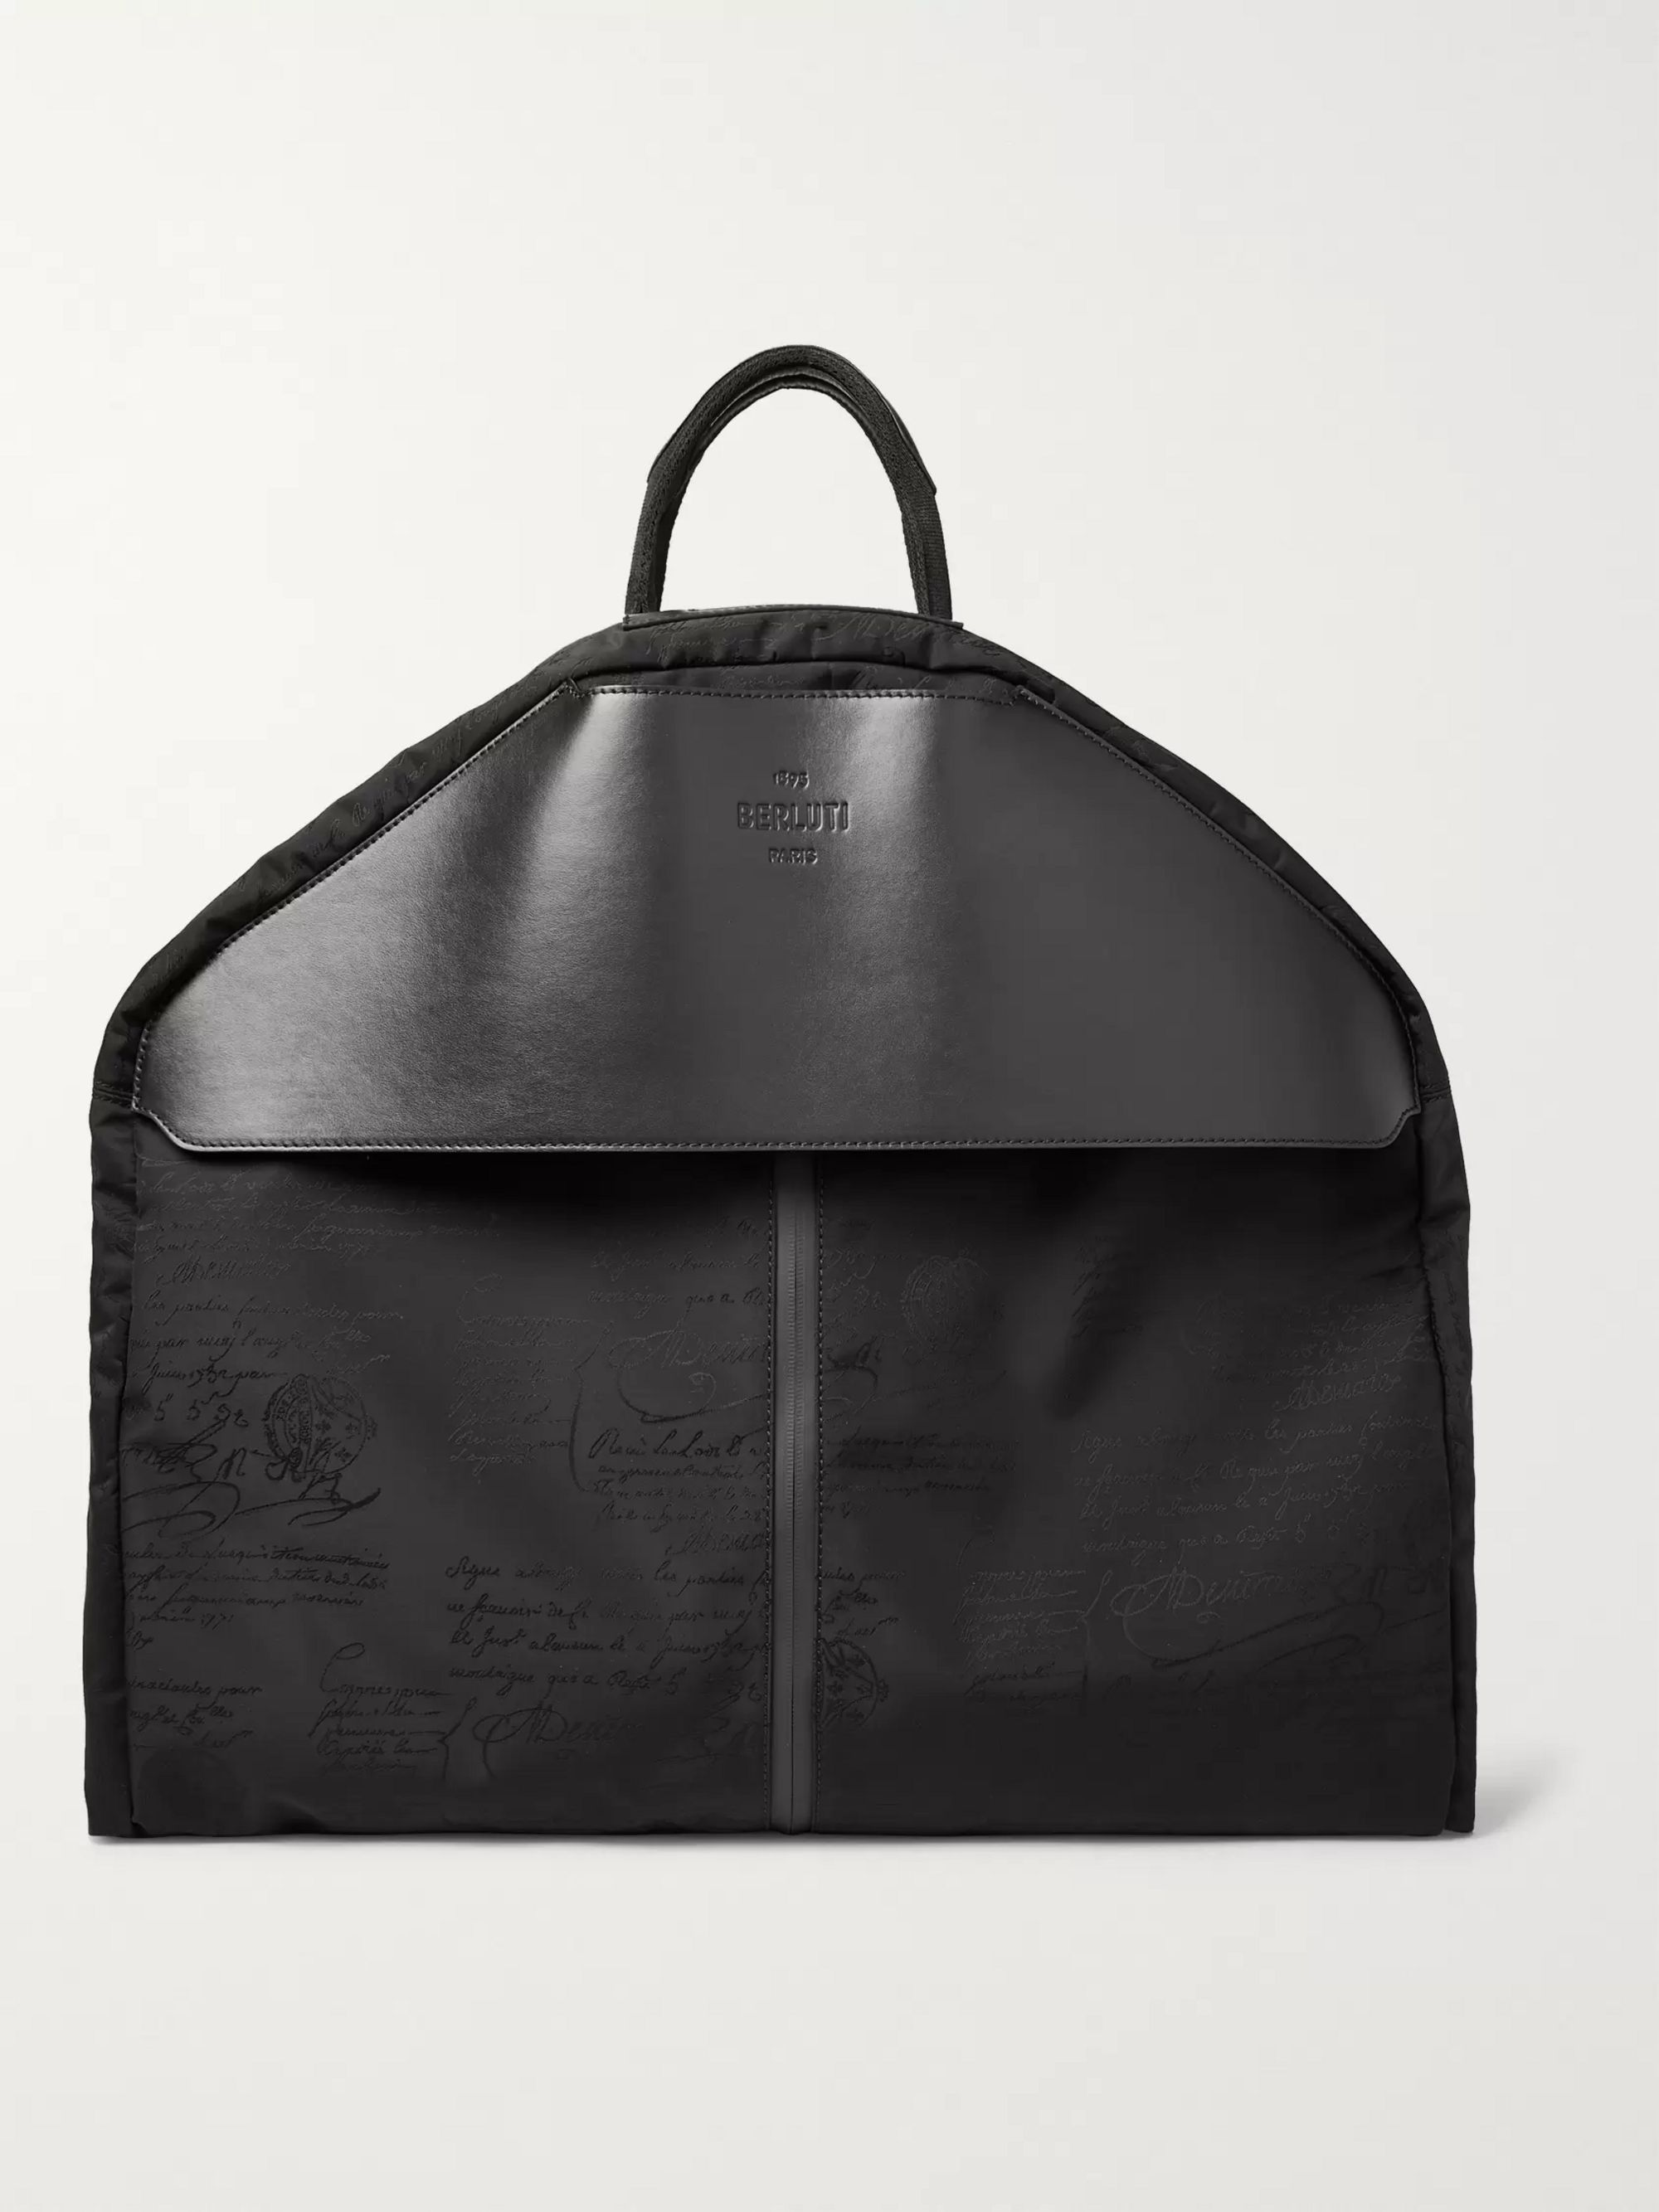 Berluti B-Way Scritto Leather-Trimmed Nylon Garment Bag